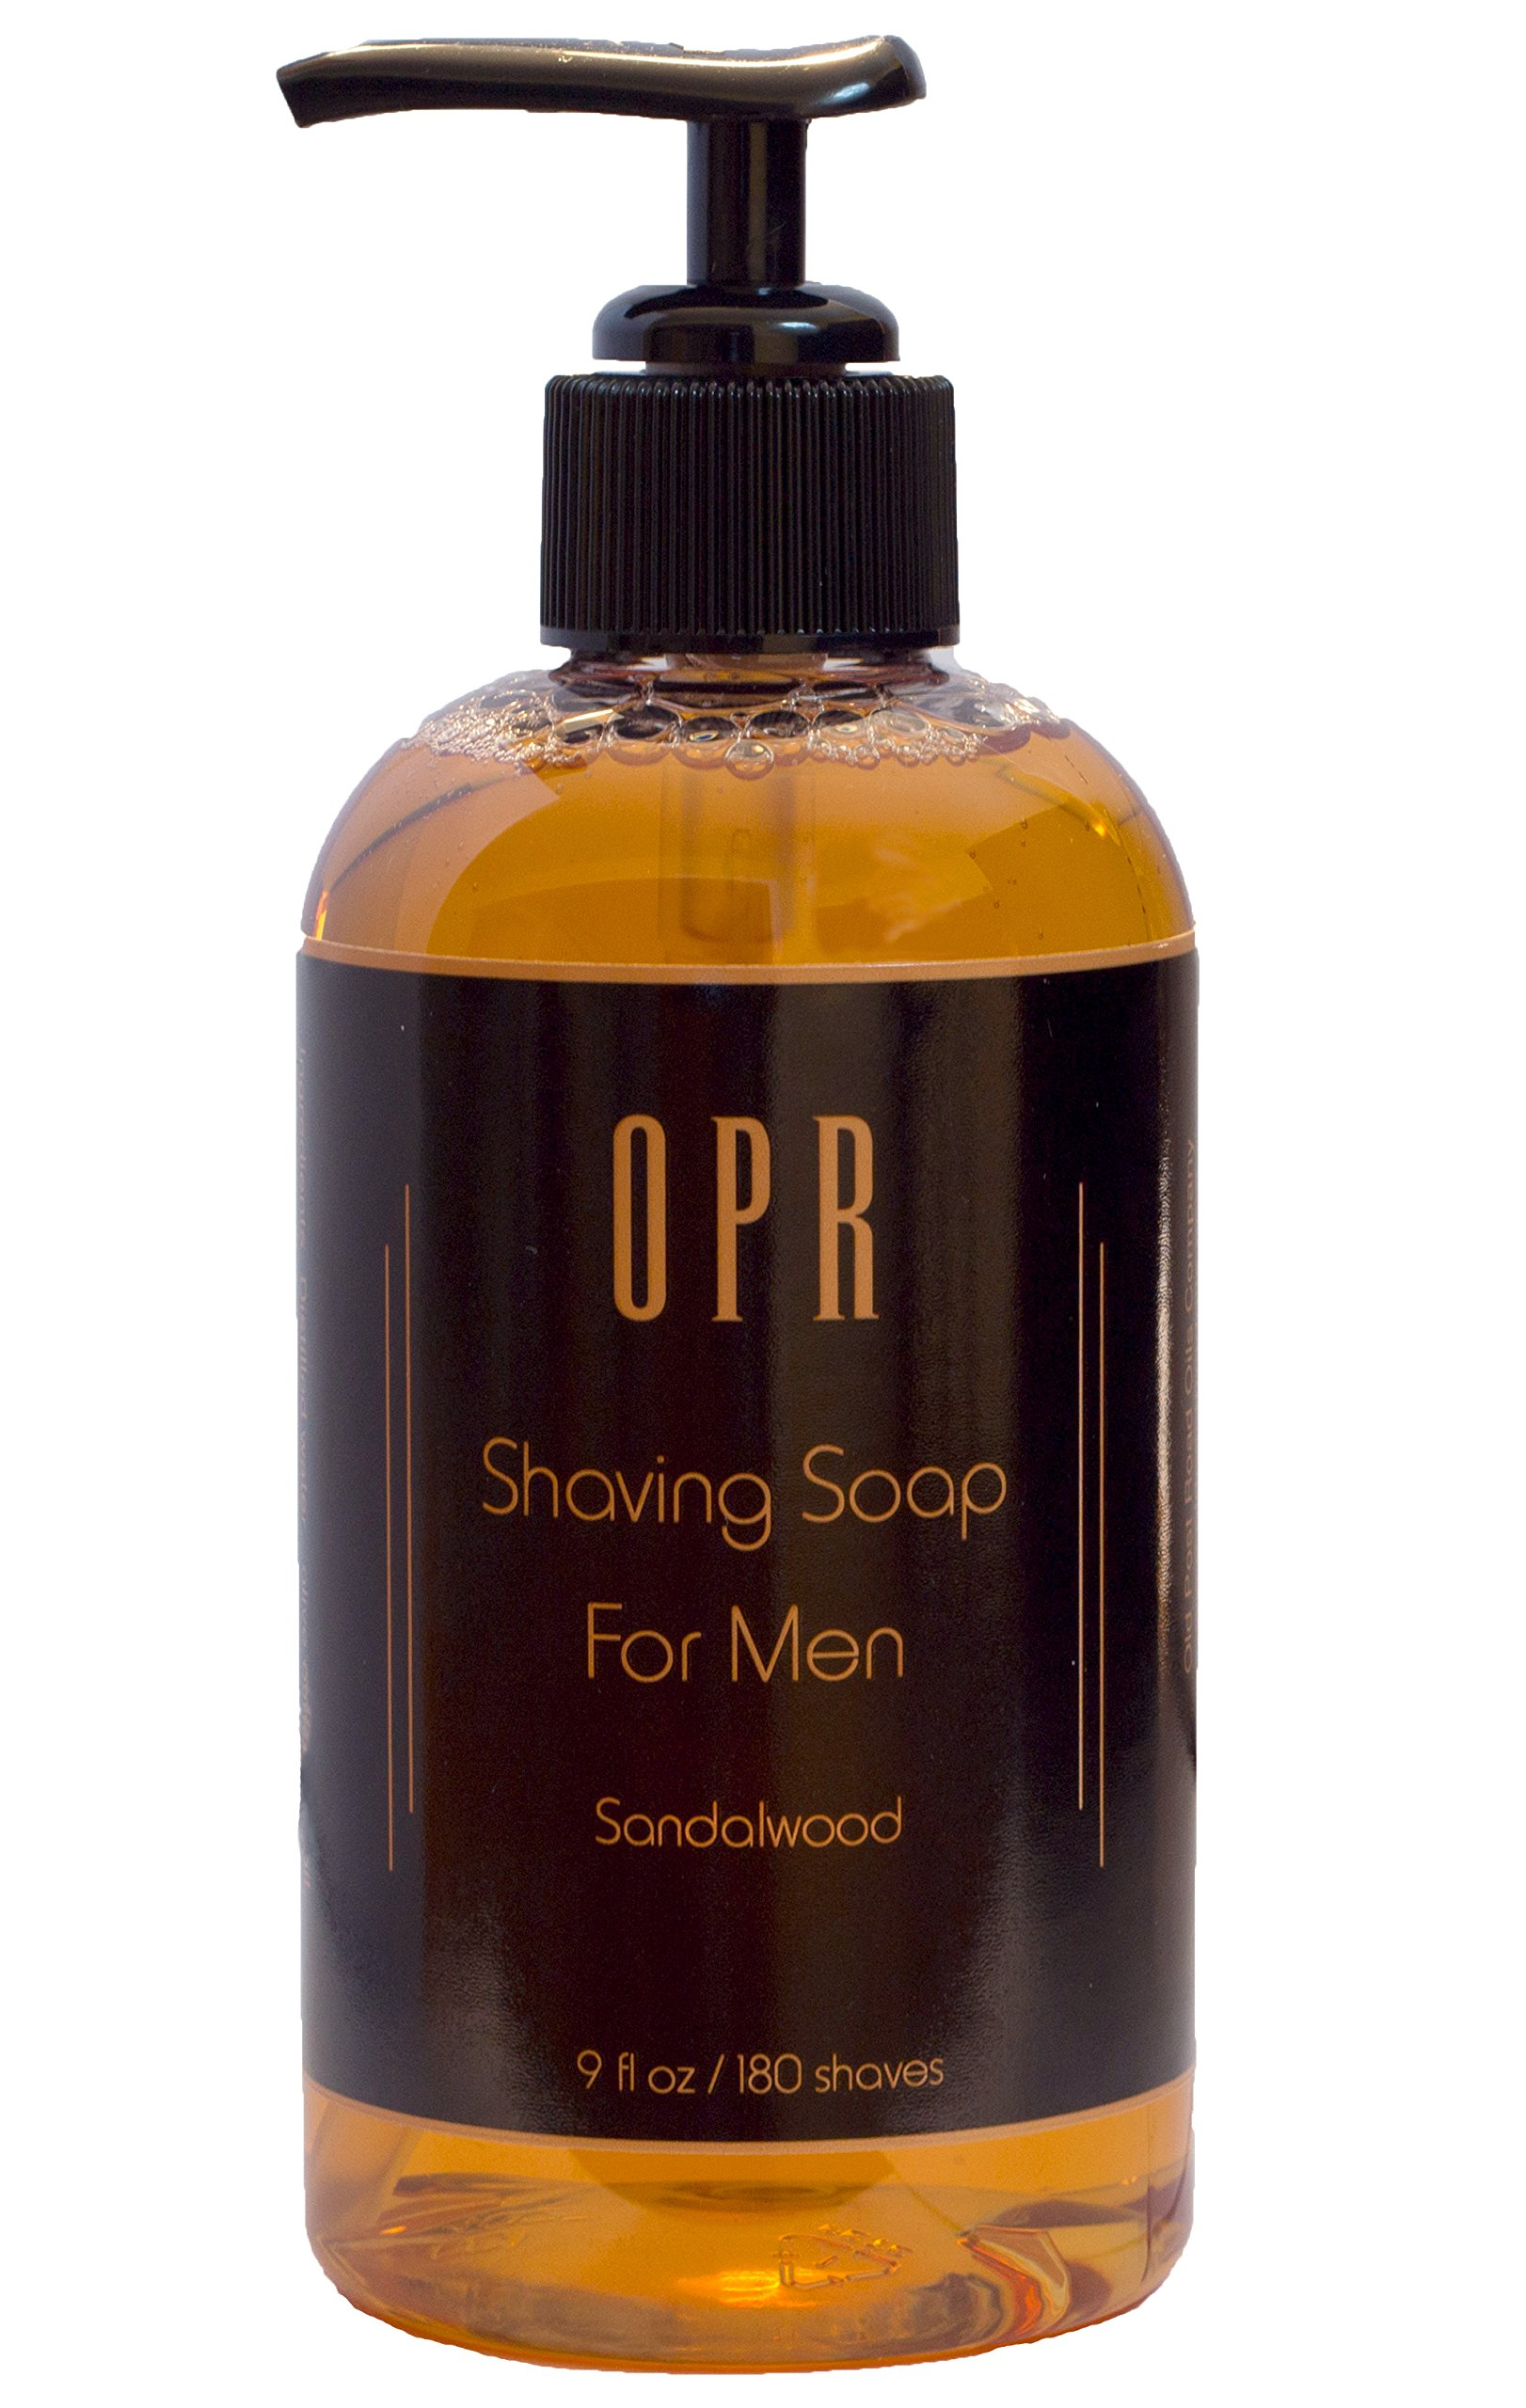 OPR's Sandalwood Shaving Soap Is Soothing Foam-Free Shave ''Cream'' That Gives Superior Lubrication And Leaves Your Face Feeling Smooth It Smells Great And Provides Up To 180 Shaves